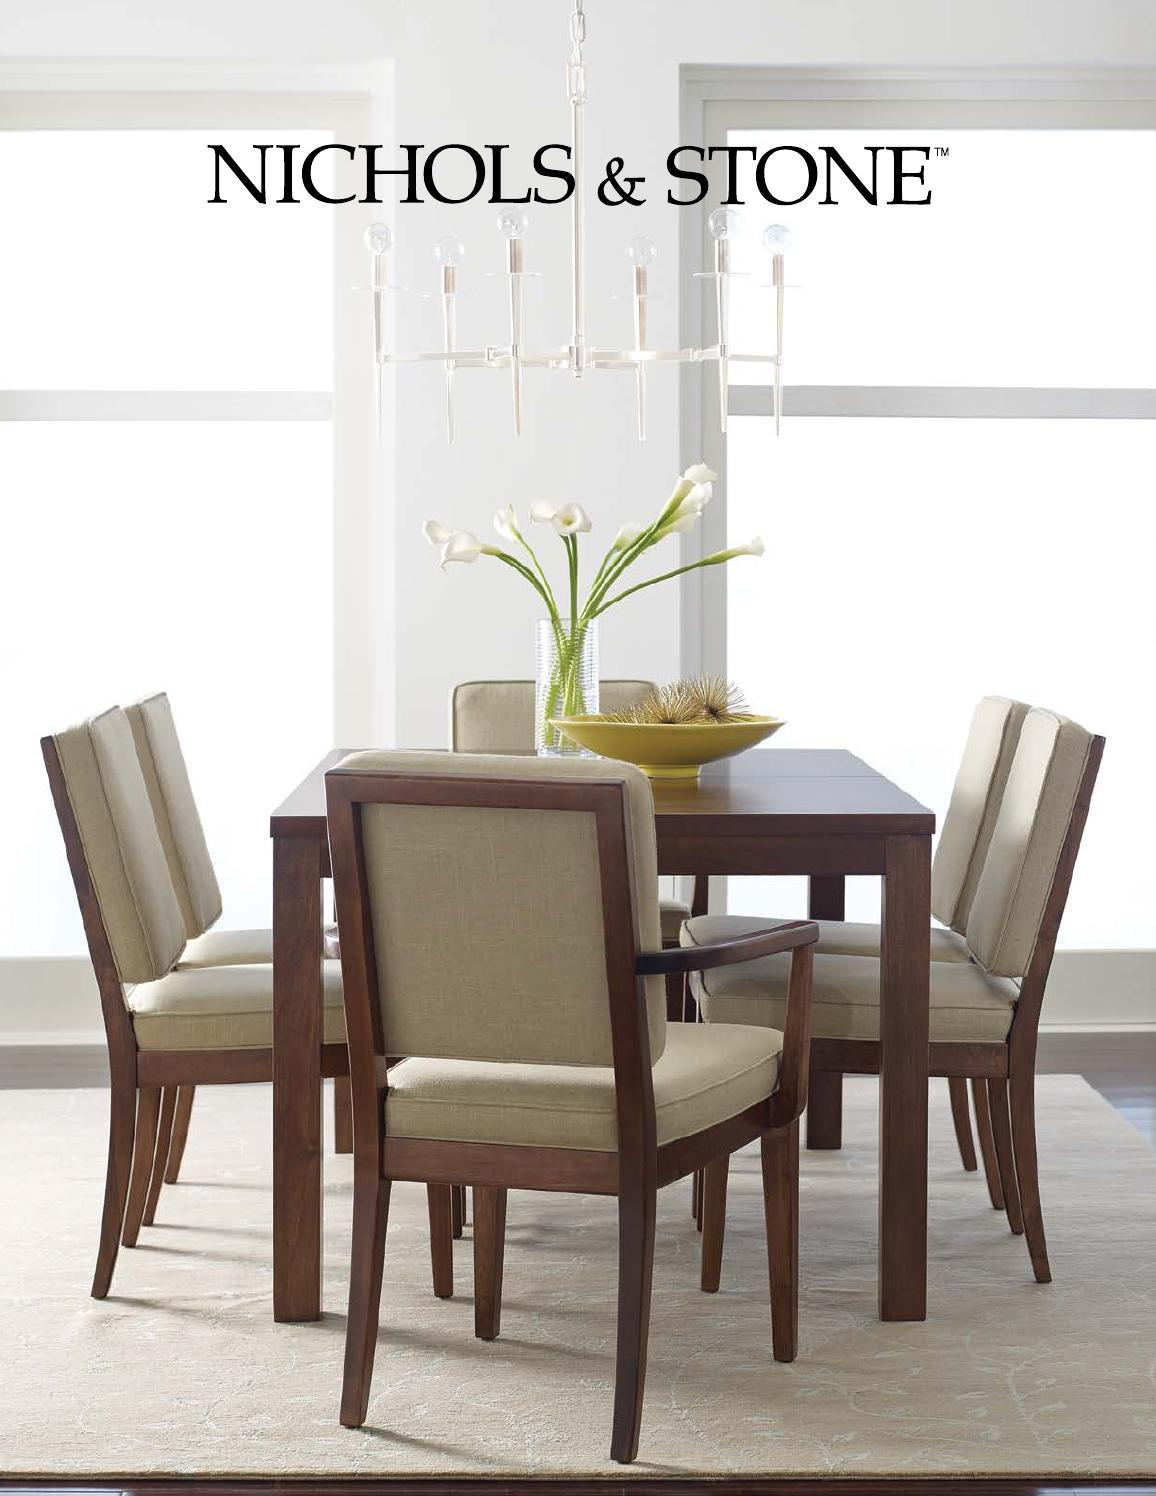 Nichols U0026 Stone Catalog By Stickley   Issuu